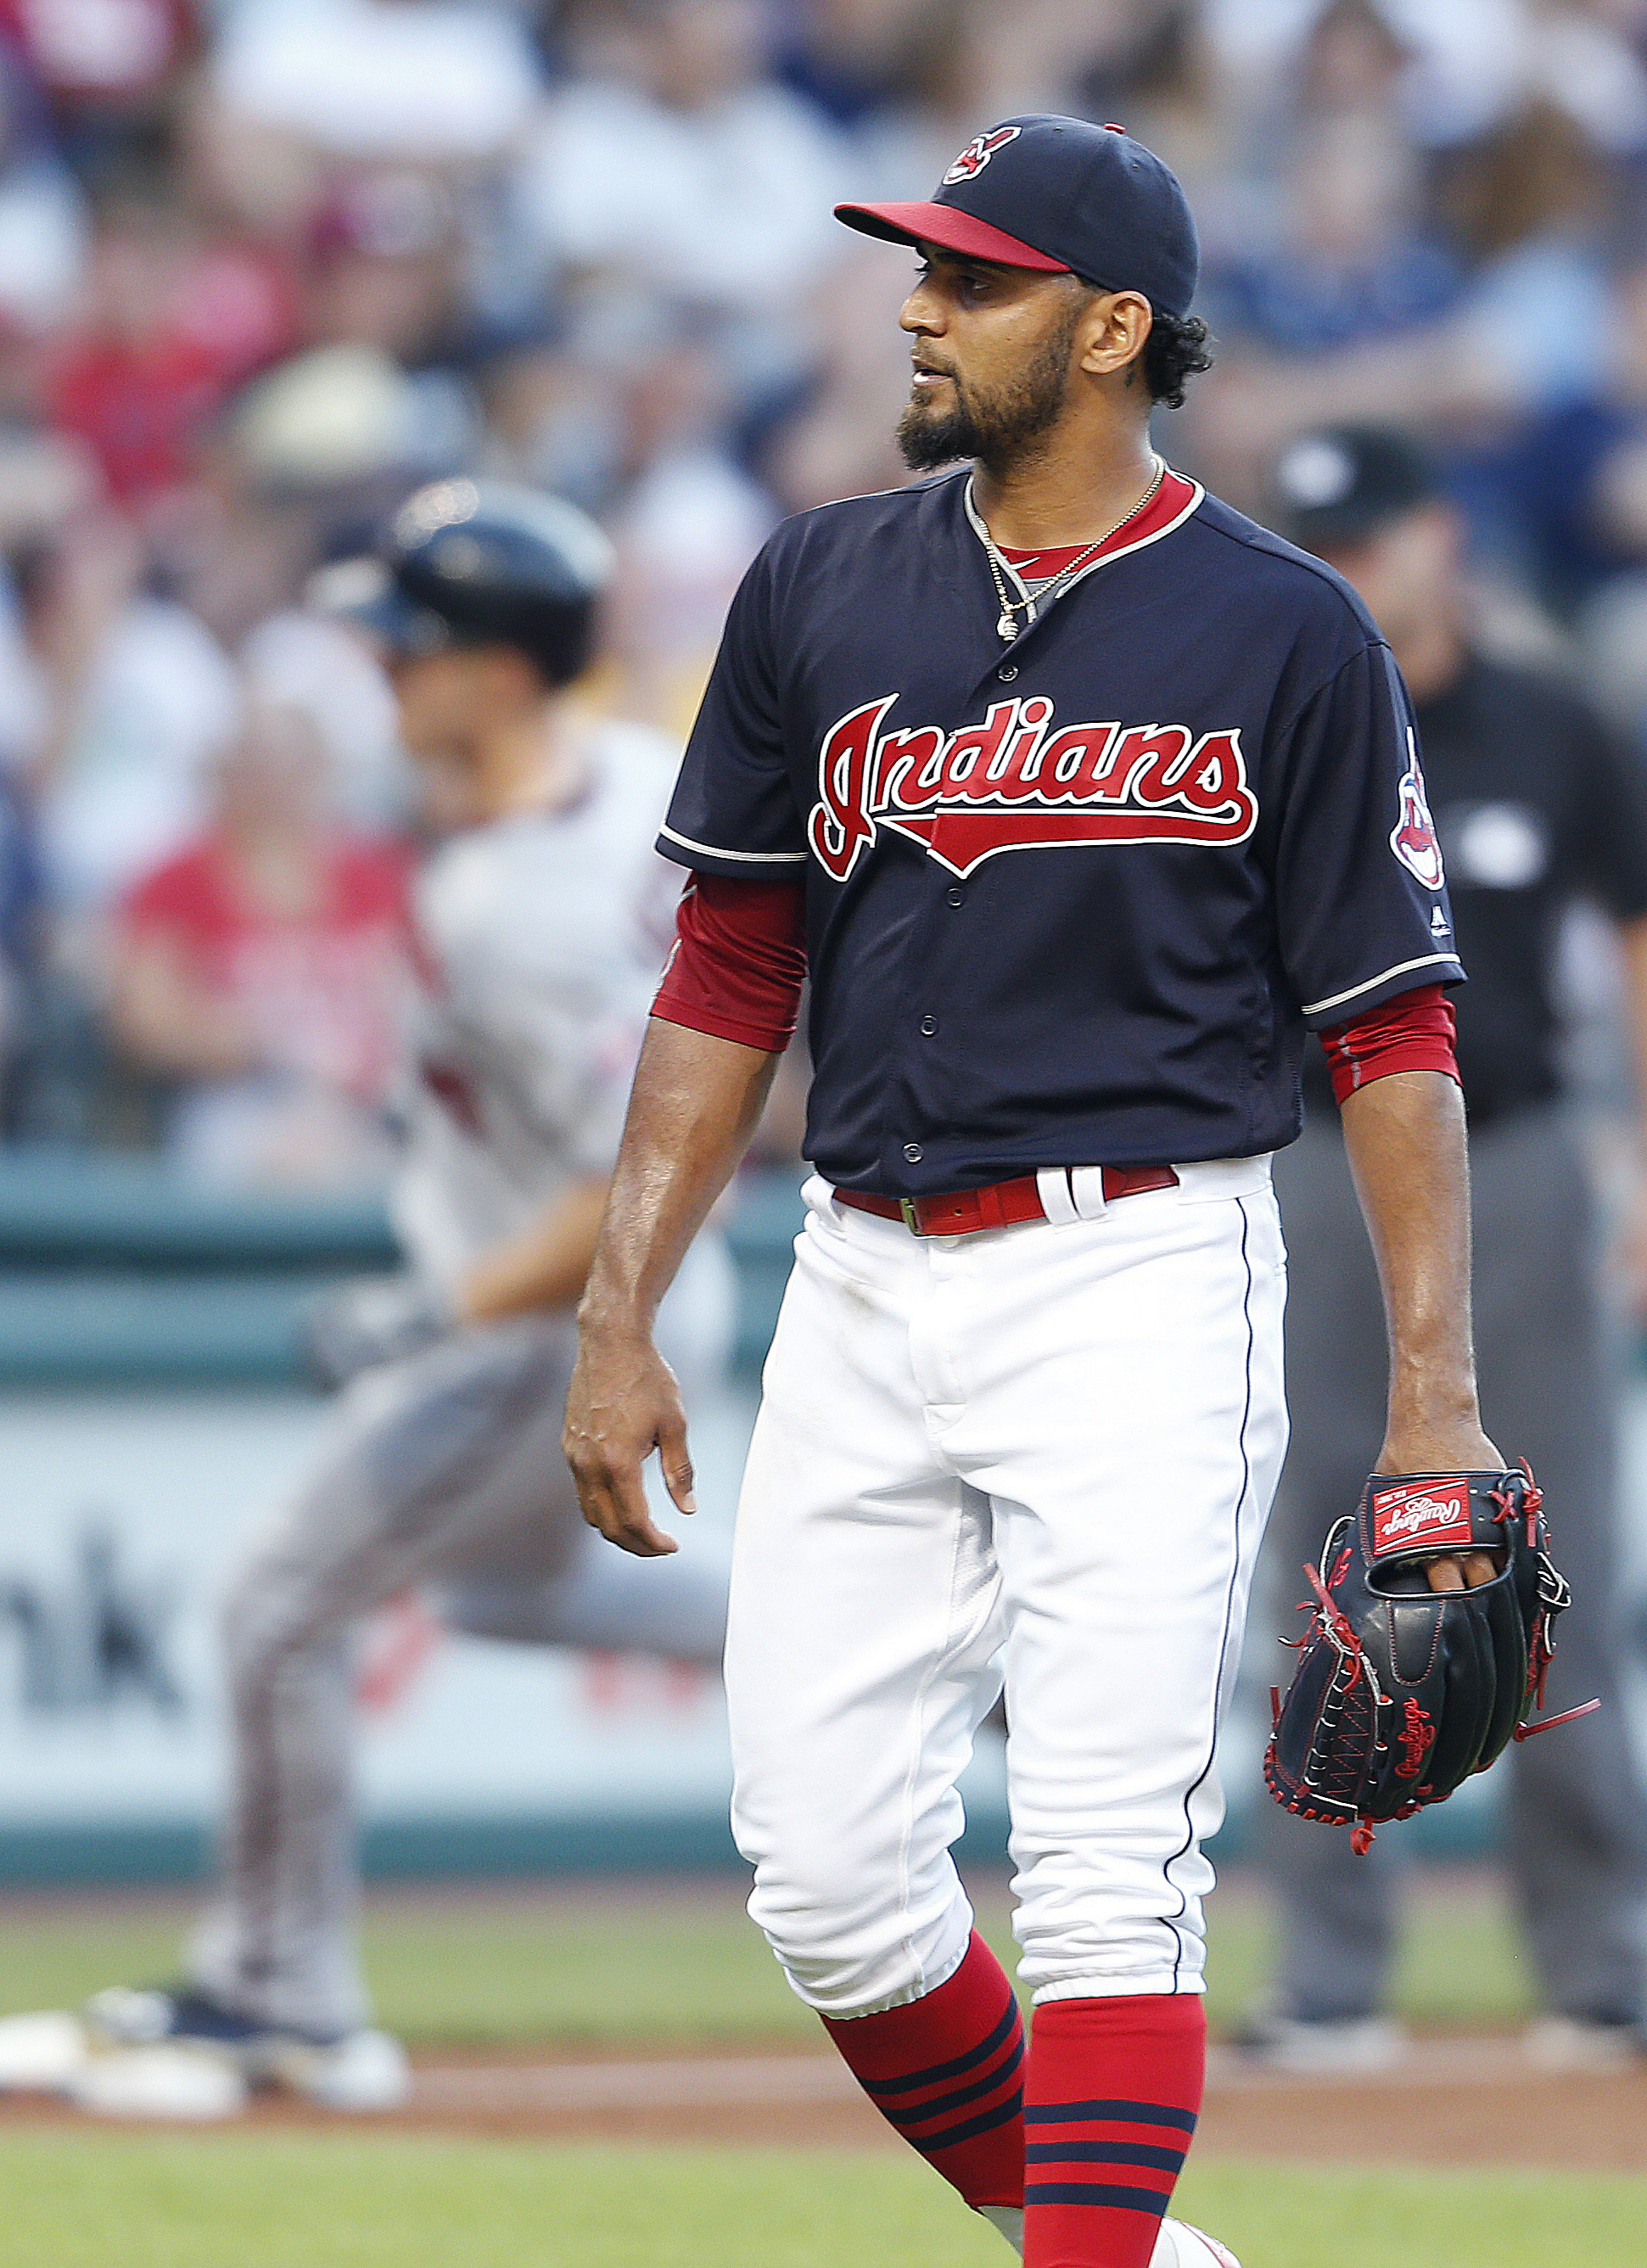 Cleveland Indians starting pitcher Danny Salazar (31) walks back to the mound after giving up a two run home run to Minnesota Twins' Max Kepler during the third inning of a baseball game Monday, Aug. 1, 2016, in Cleveland. The home run was Kepler's second